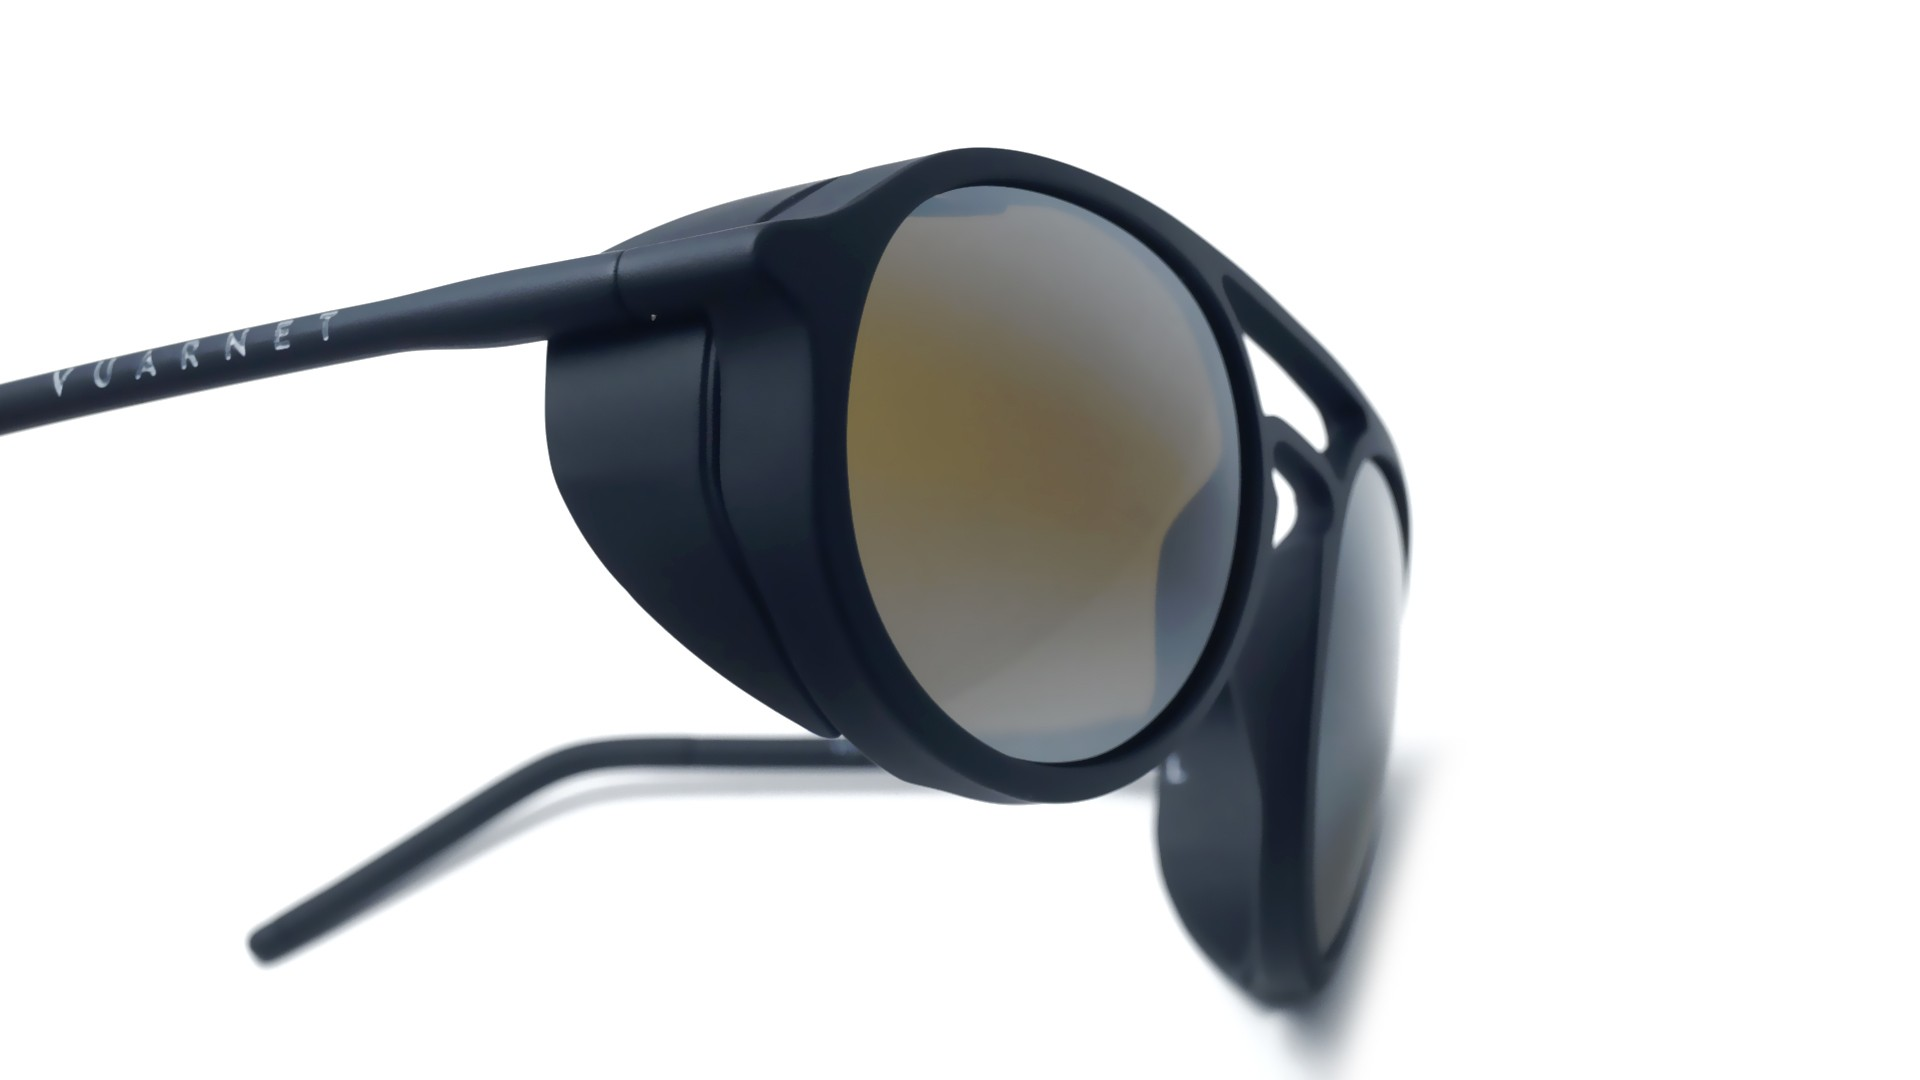 a0fb23043fa Sunglasses Vuarnet Ice Black Mat Skilynx VL1709 0001 7184 51-18 Large  Gradient Flash